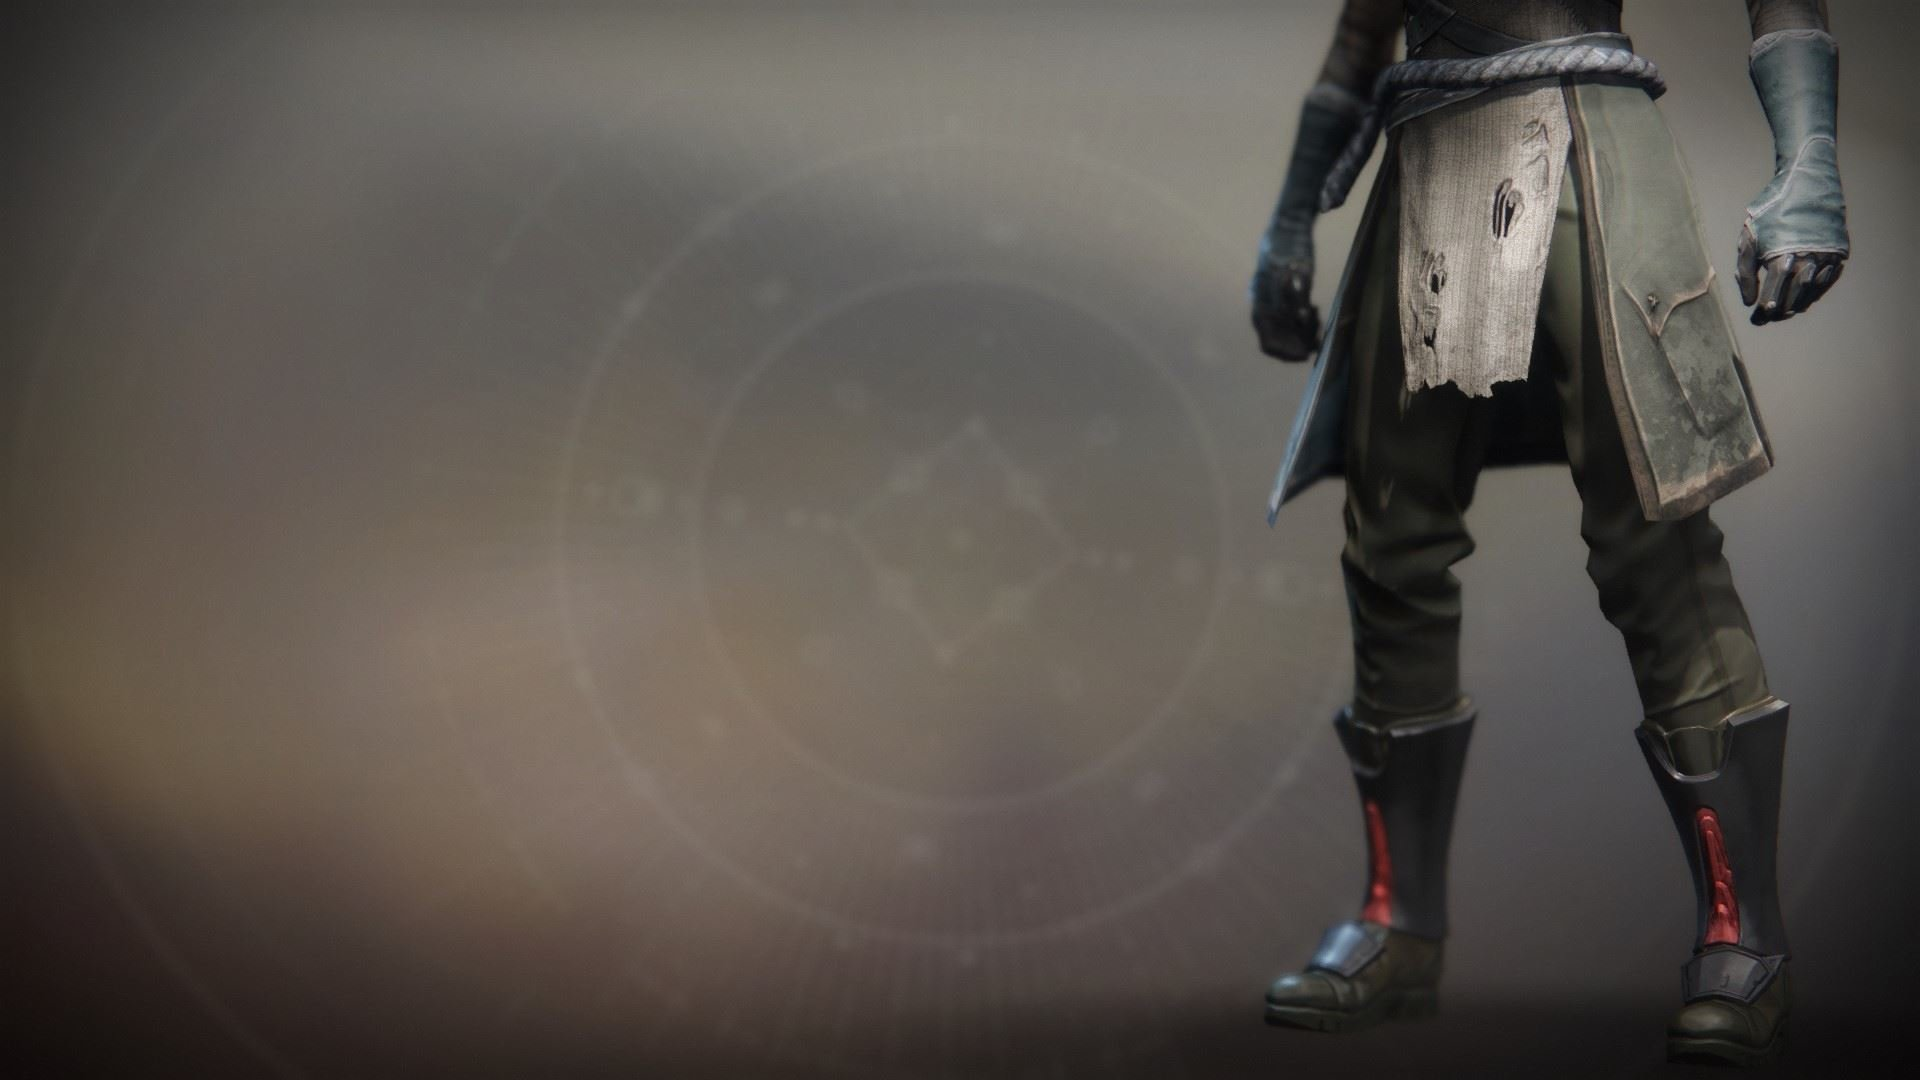 An in-game render of the Annealed Shaper Boots.